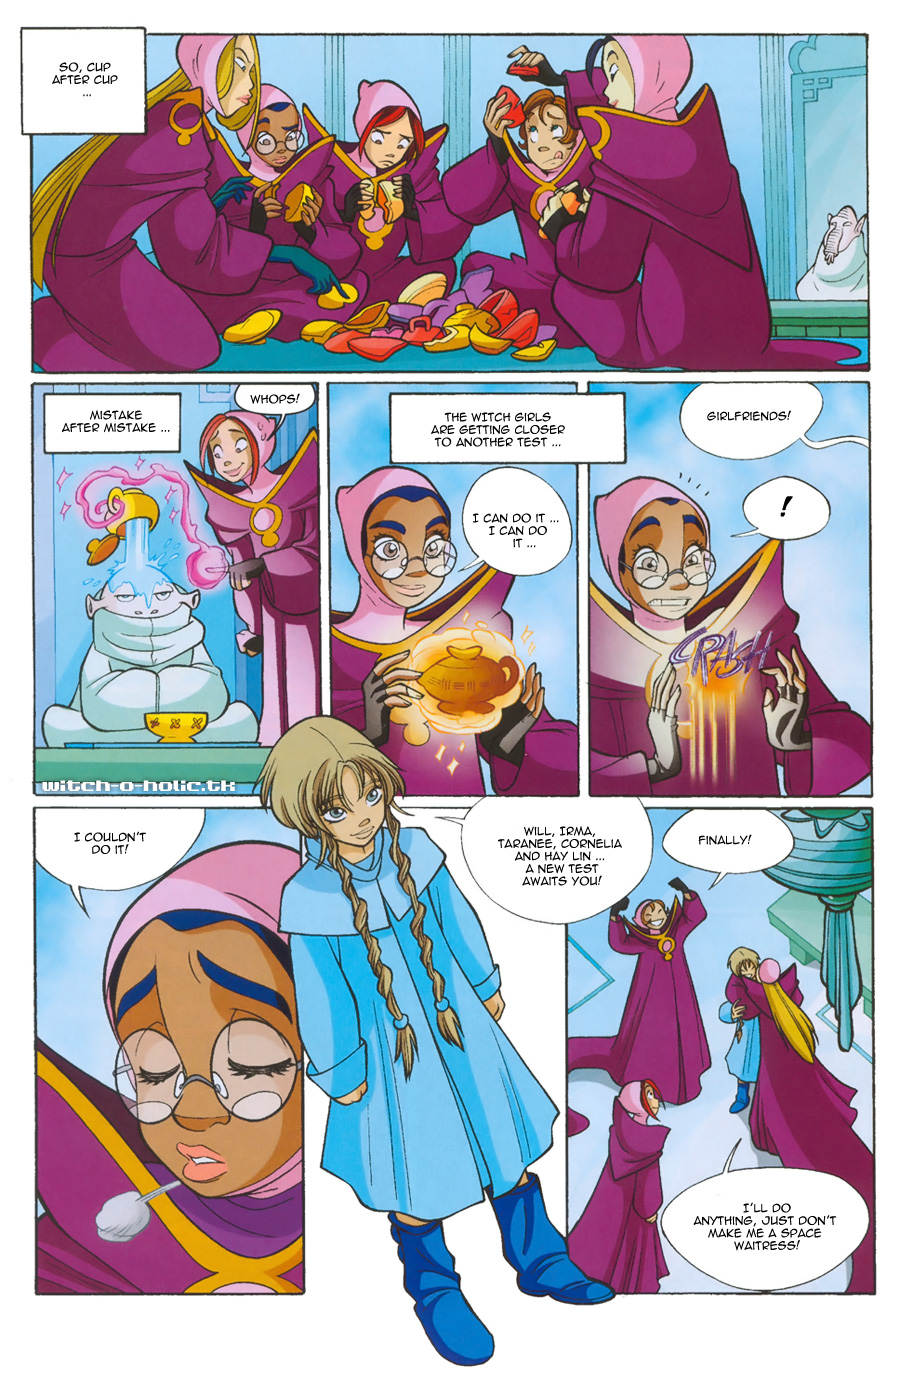 Read online W.i.t.c.h. comic -  Issue #135 - 4